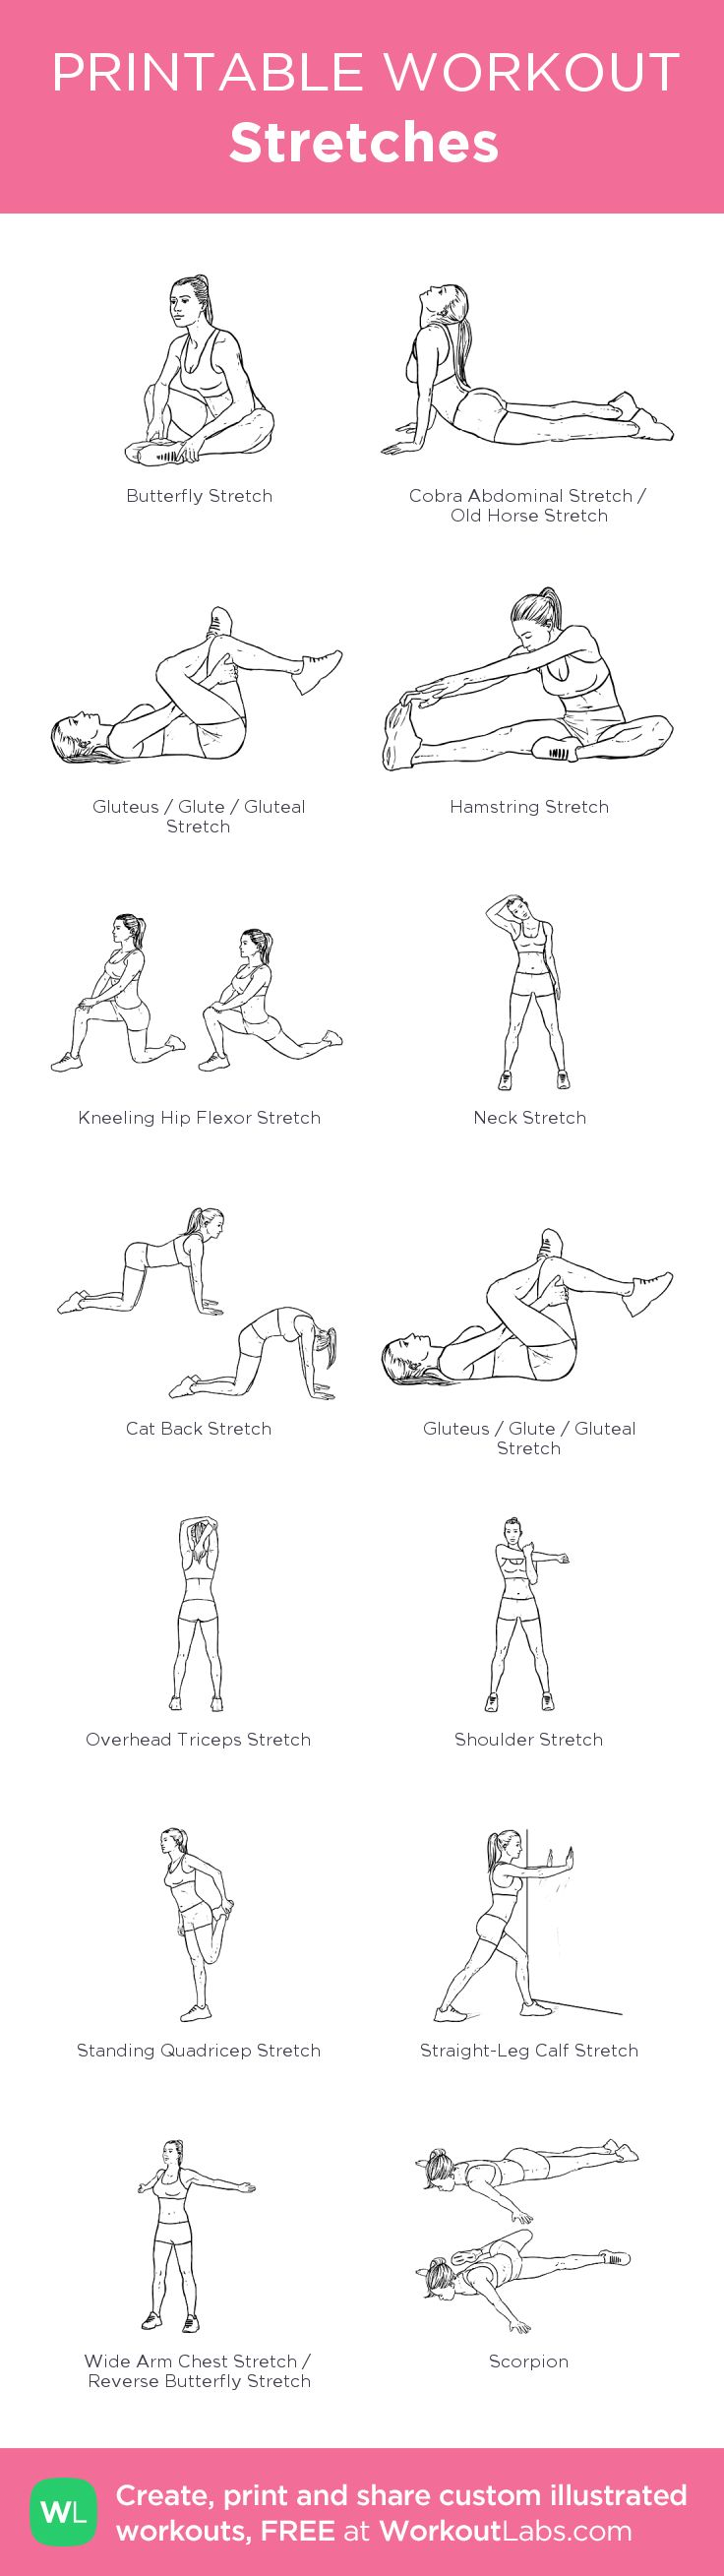 Stretches: my visual workout created at WorkoutLabs.com • Click through to customize and download as a FREE PDF! #customworkout